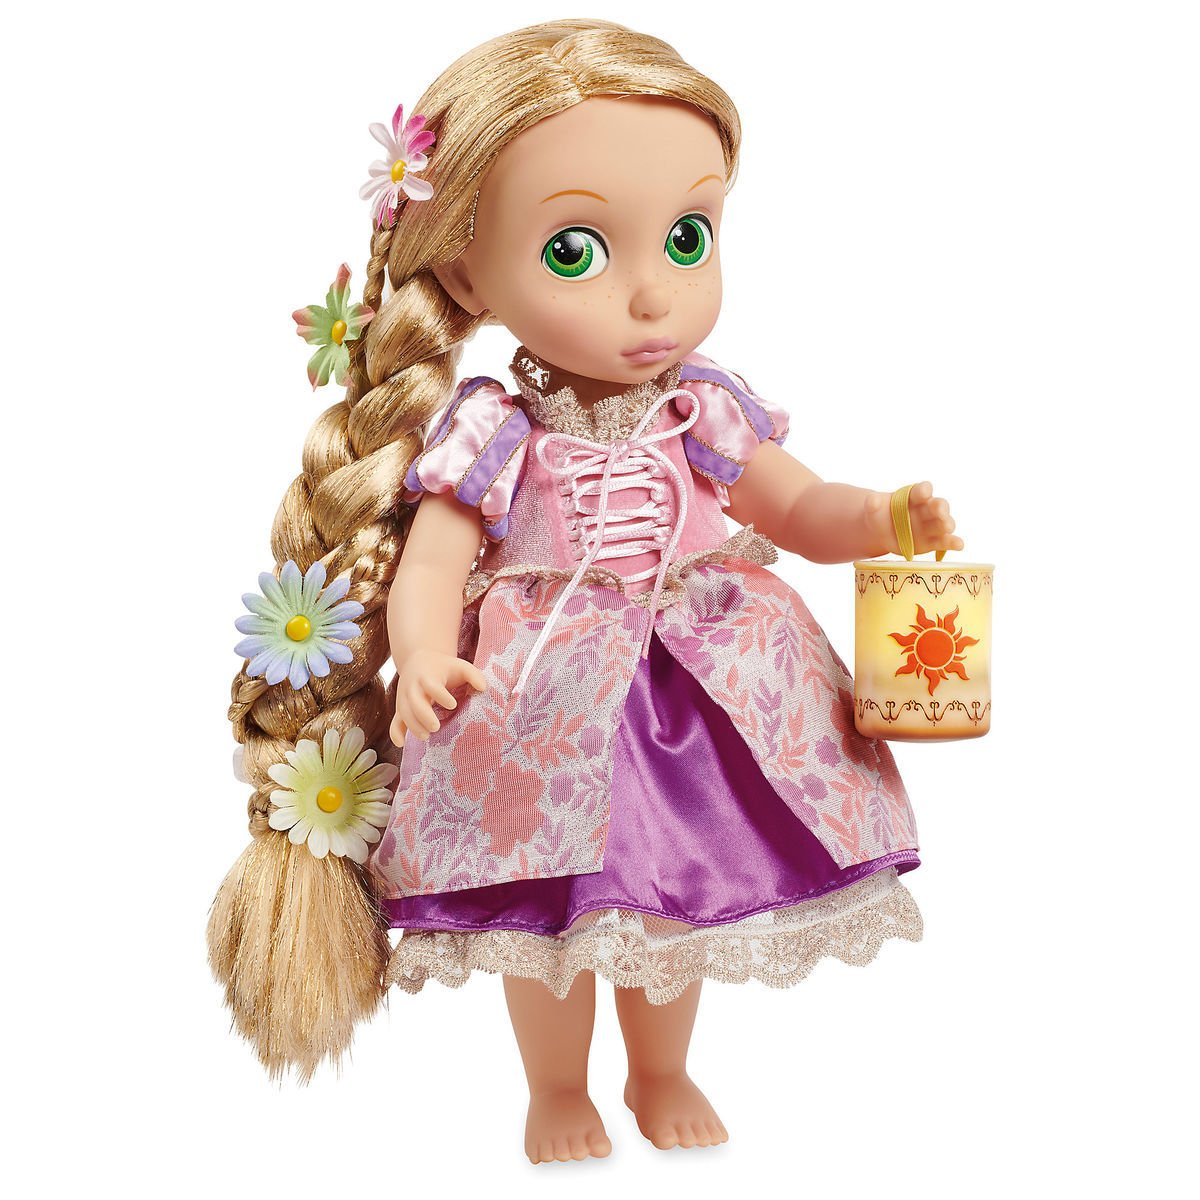 Disney Store Animators' Collection Rapunzel Doll - Special Edition 2019